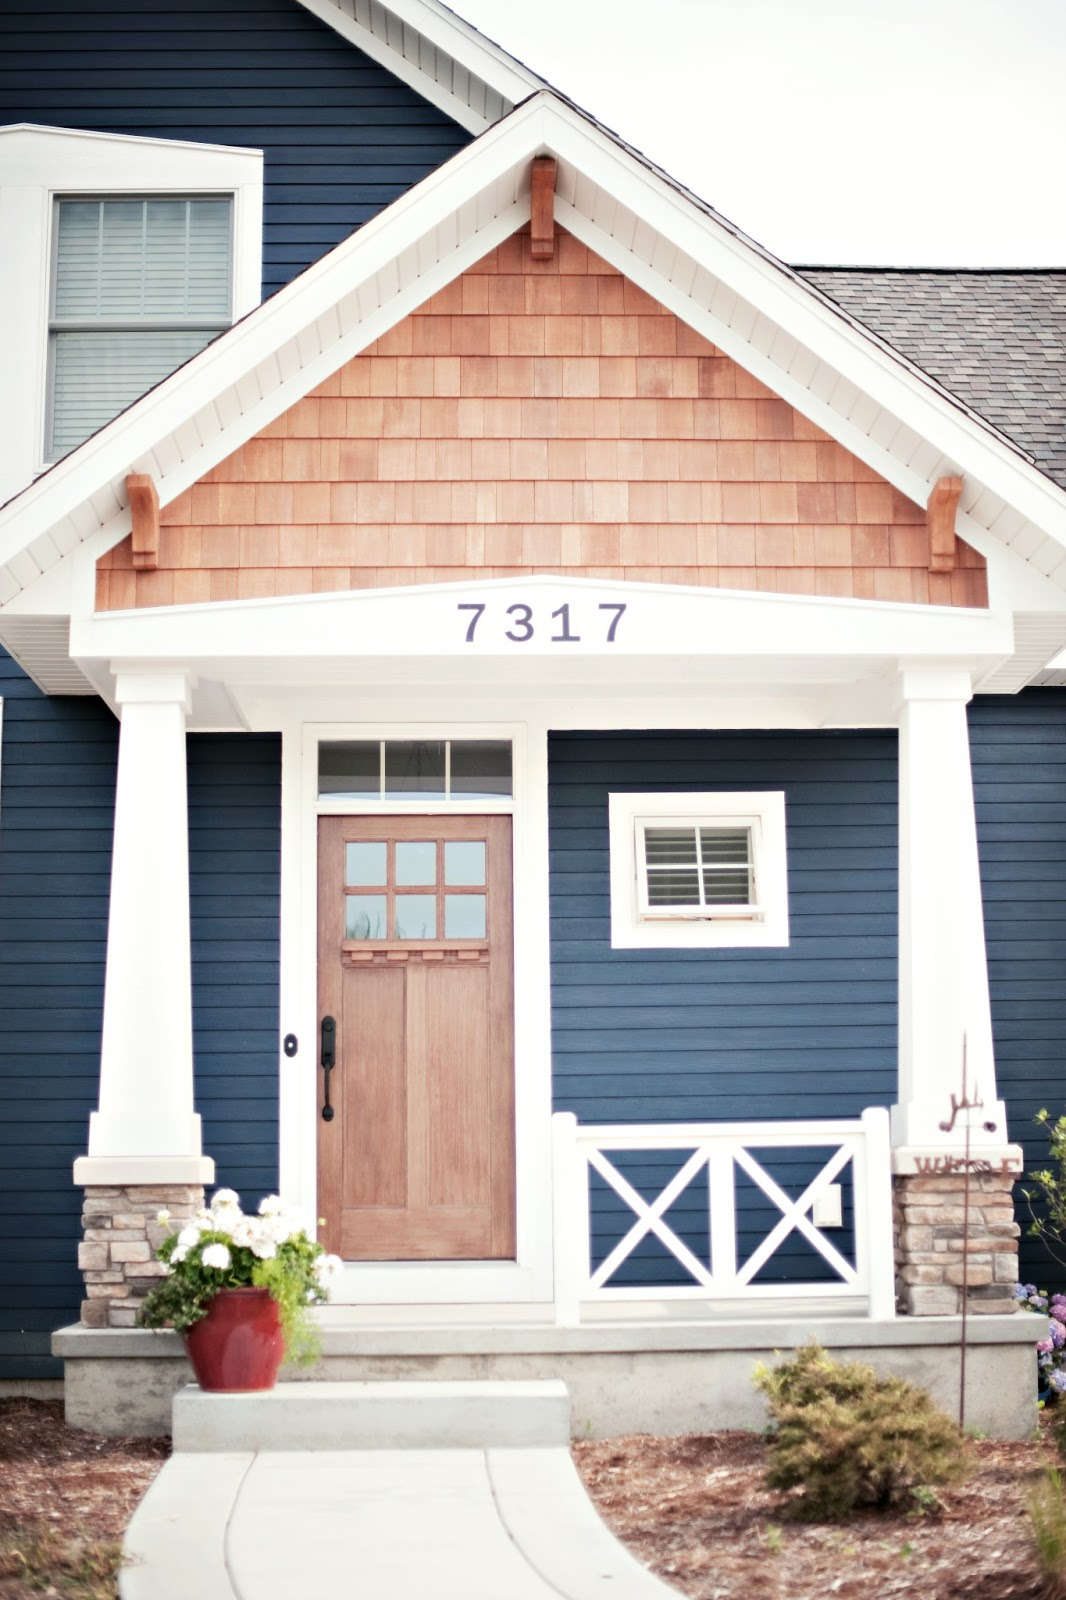 Lisa mende design best navy blue paint colors 8 of my favs Front door color ideas for beige house